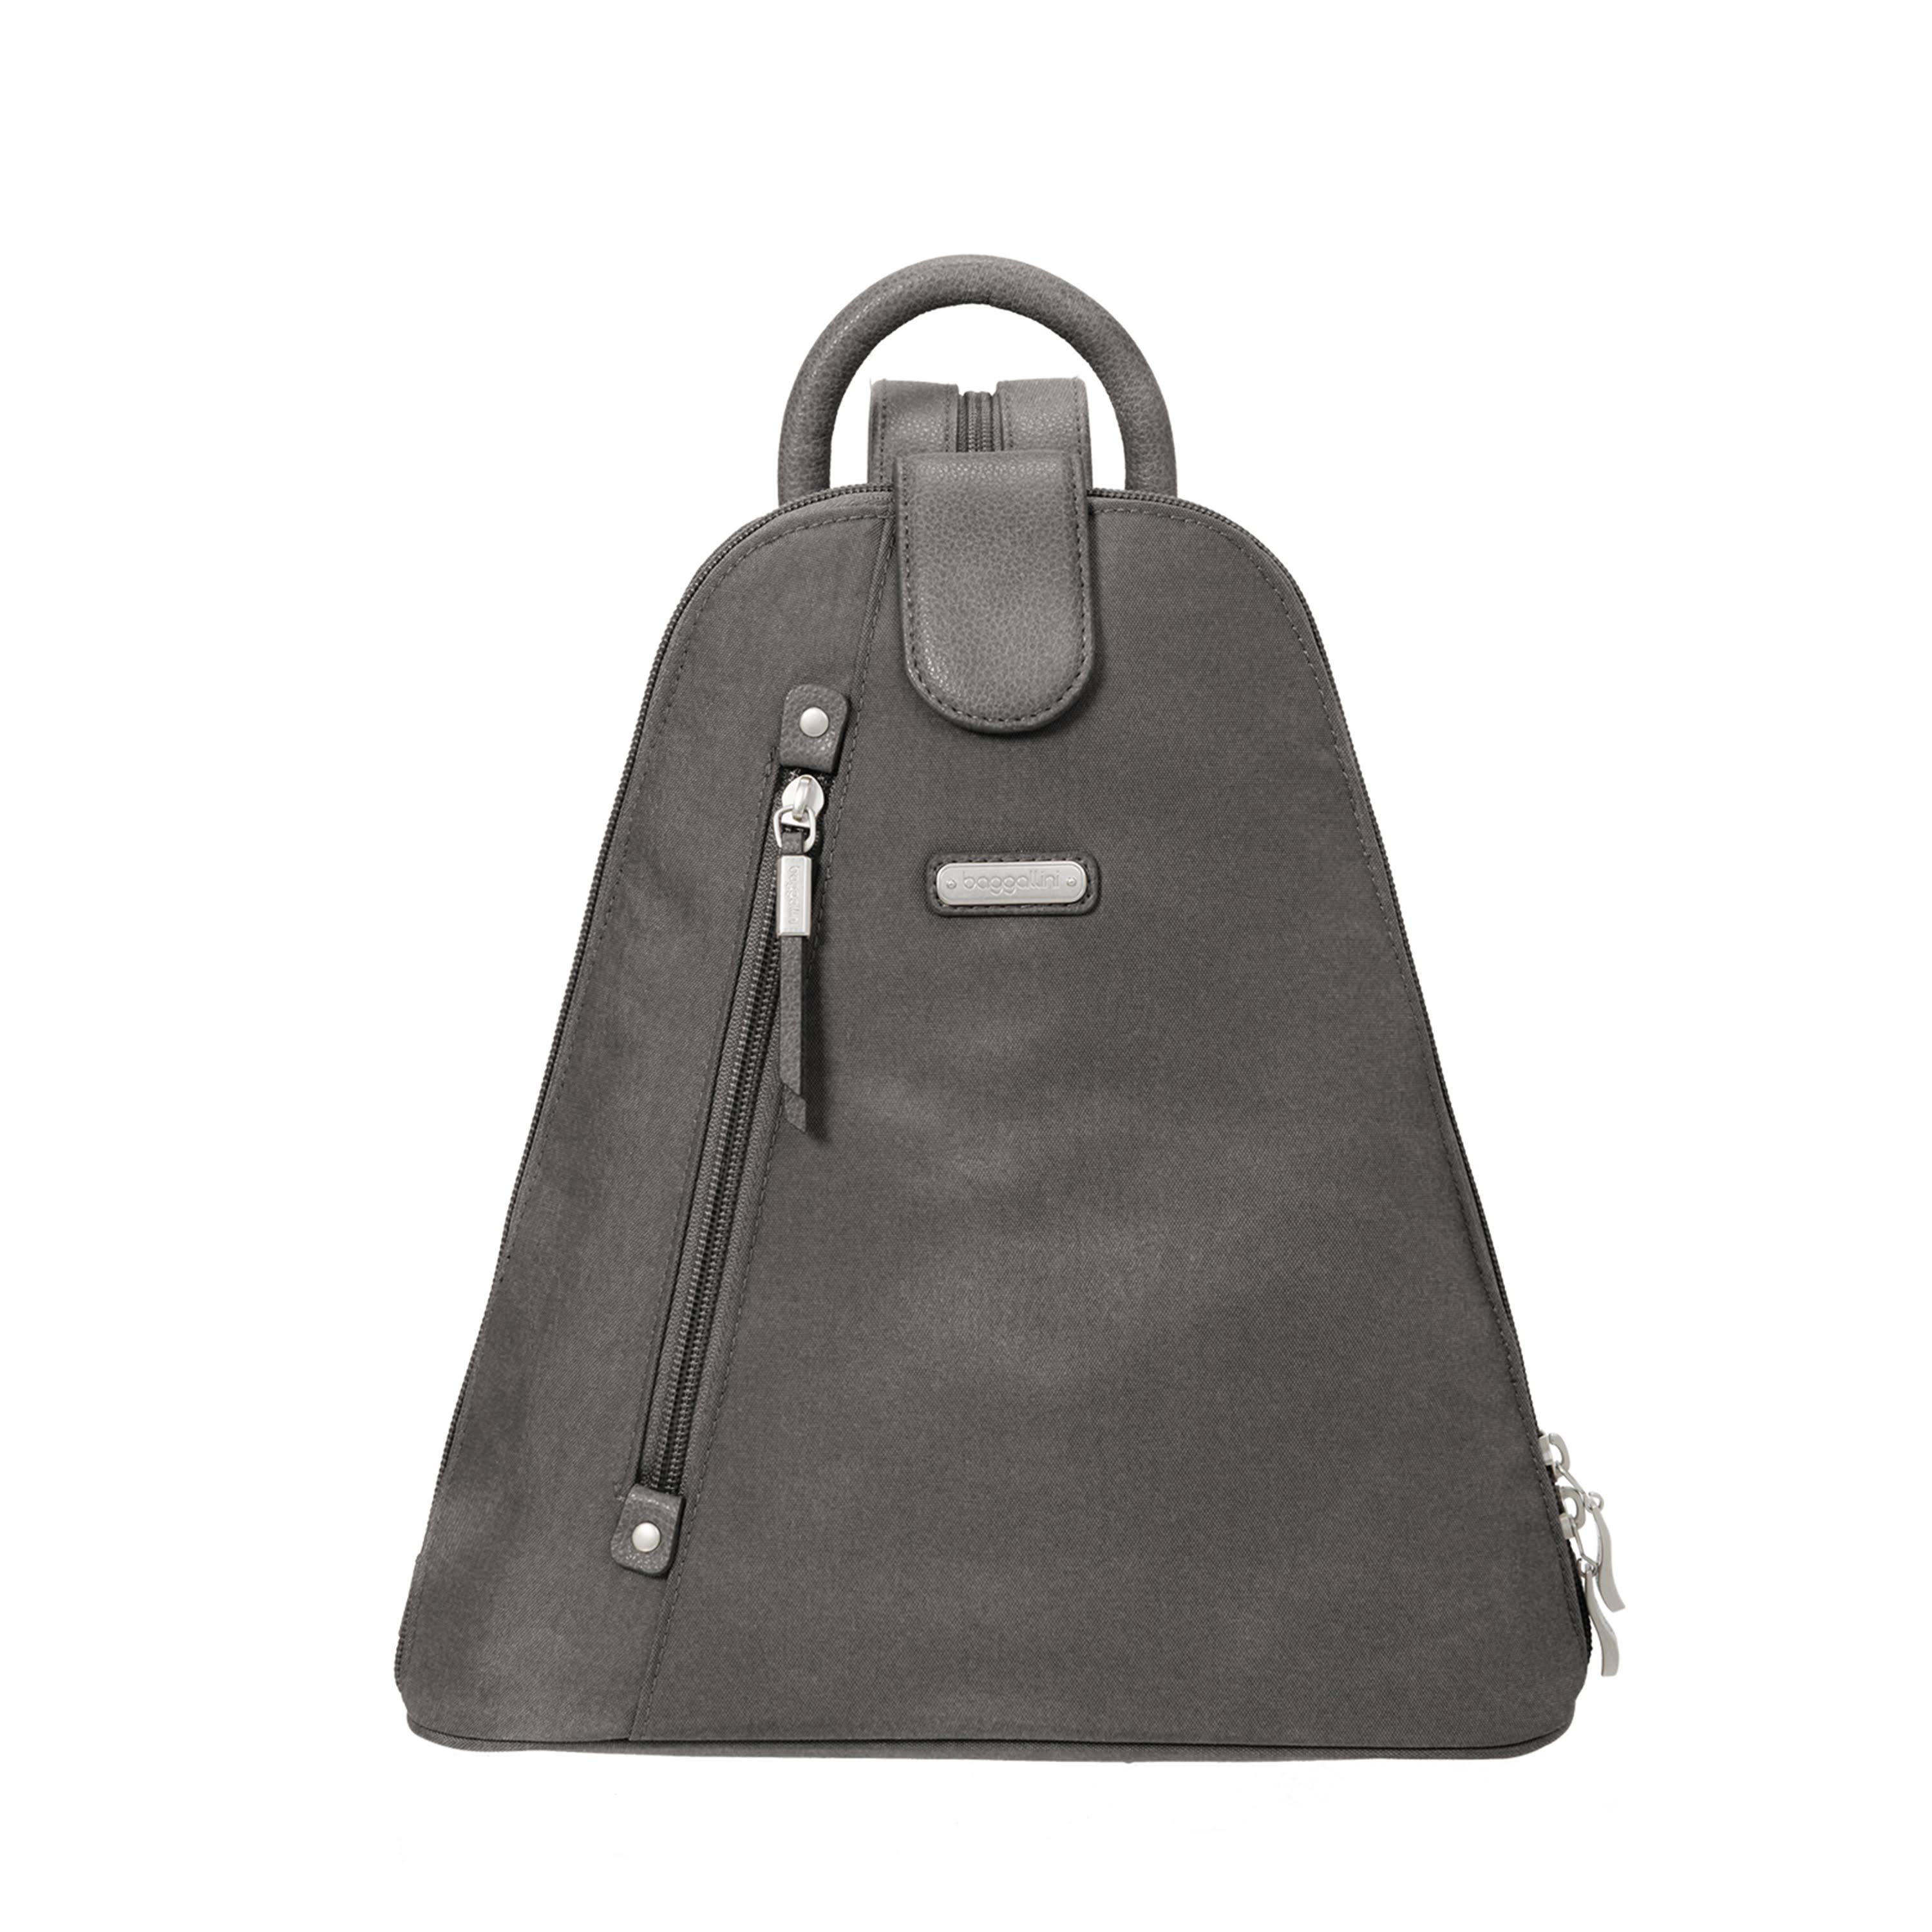 Baggallini Metro Backpack with RFID Phone Wristlet (Sterling Shimmer)